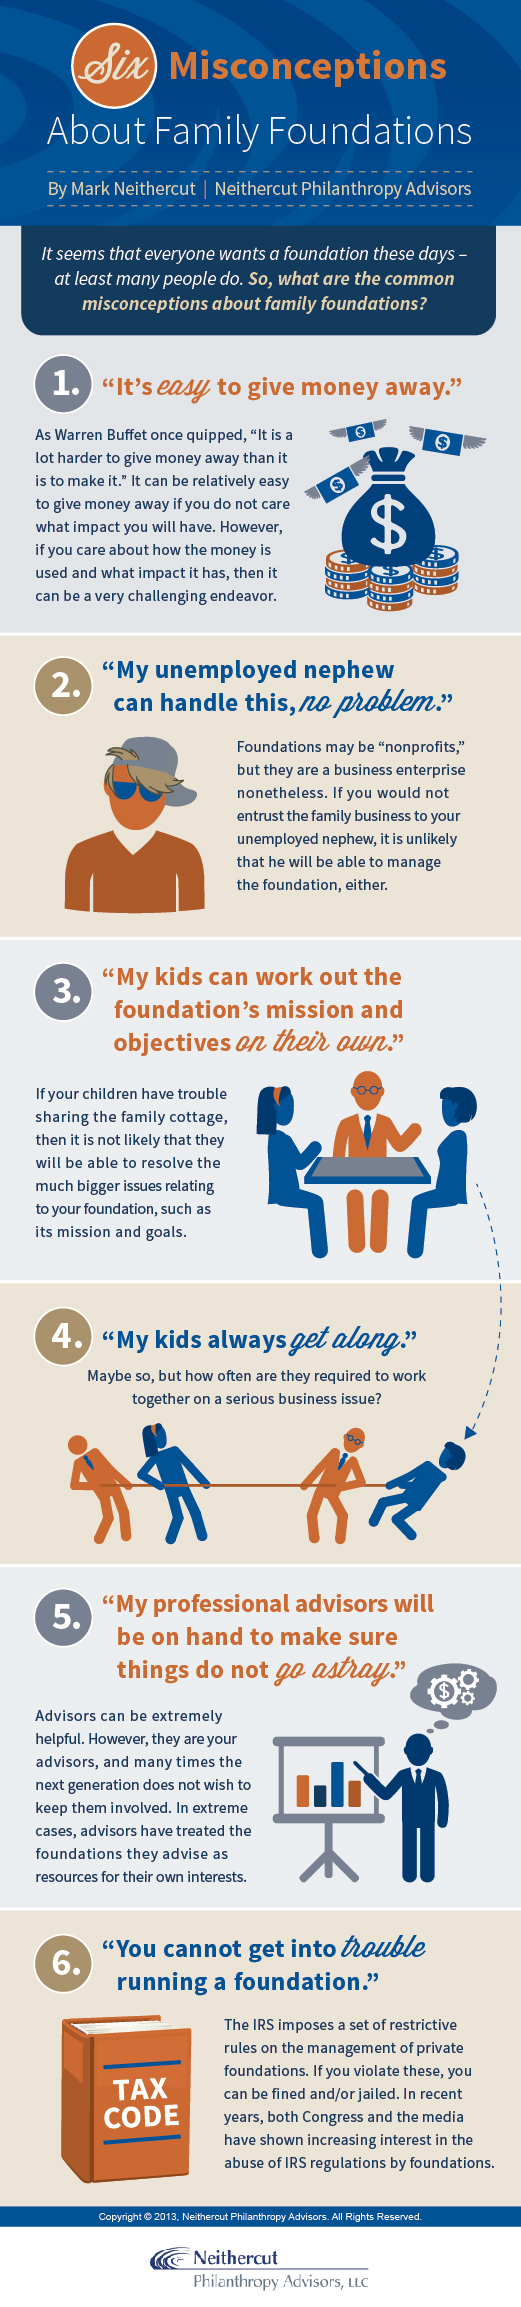 Six Misconceptions About Family Foundations